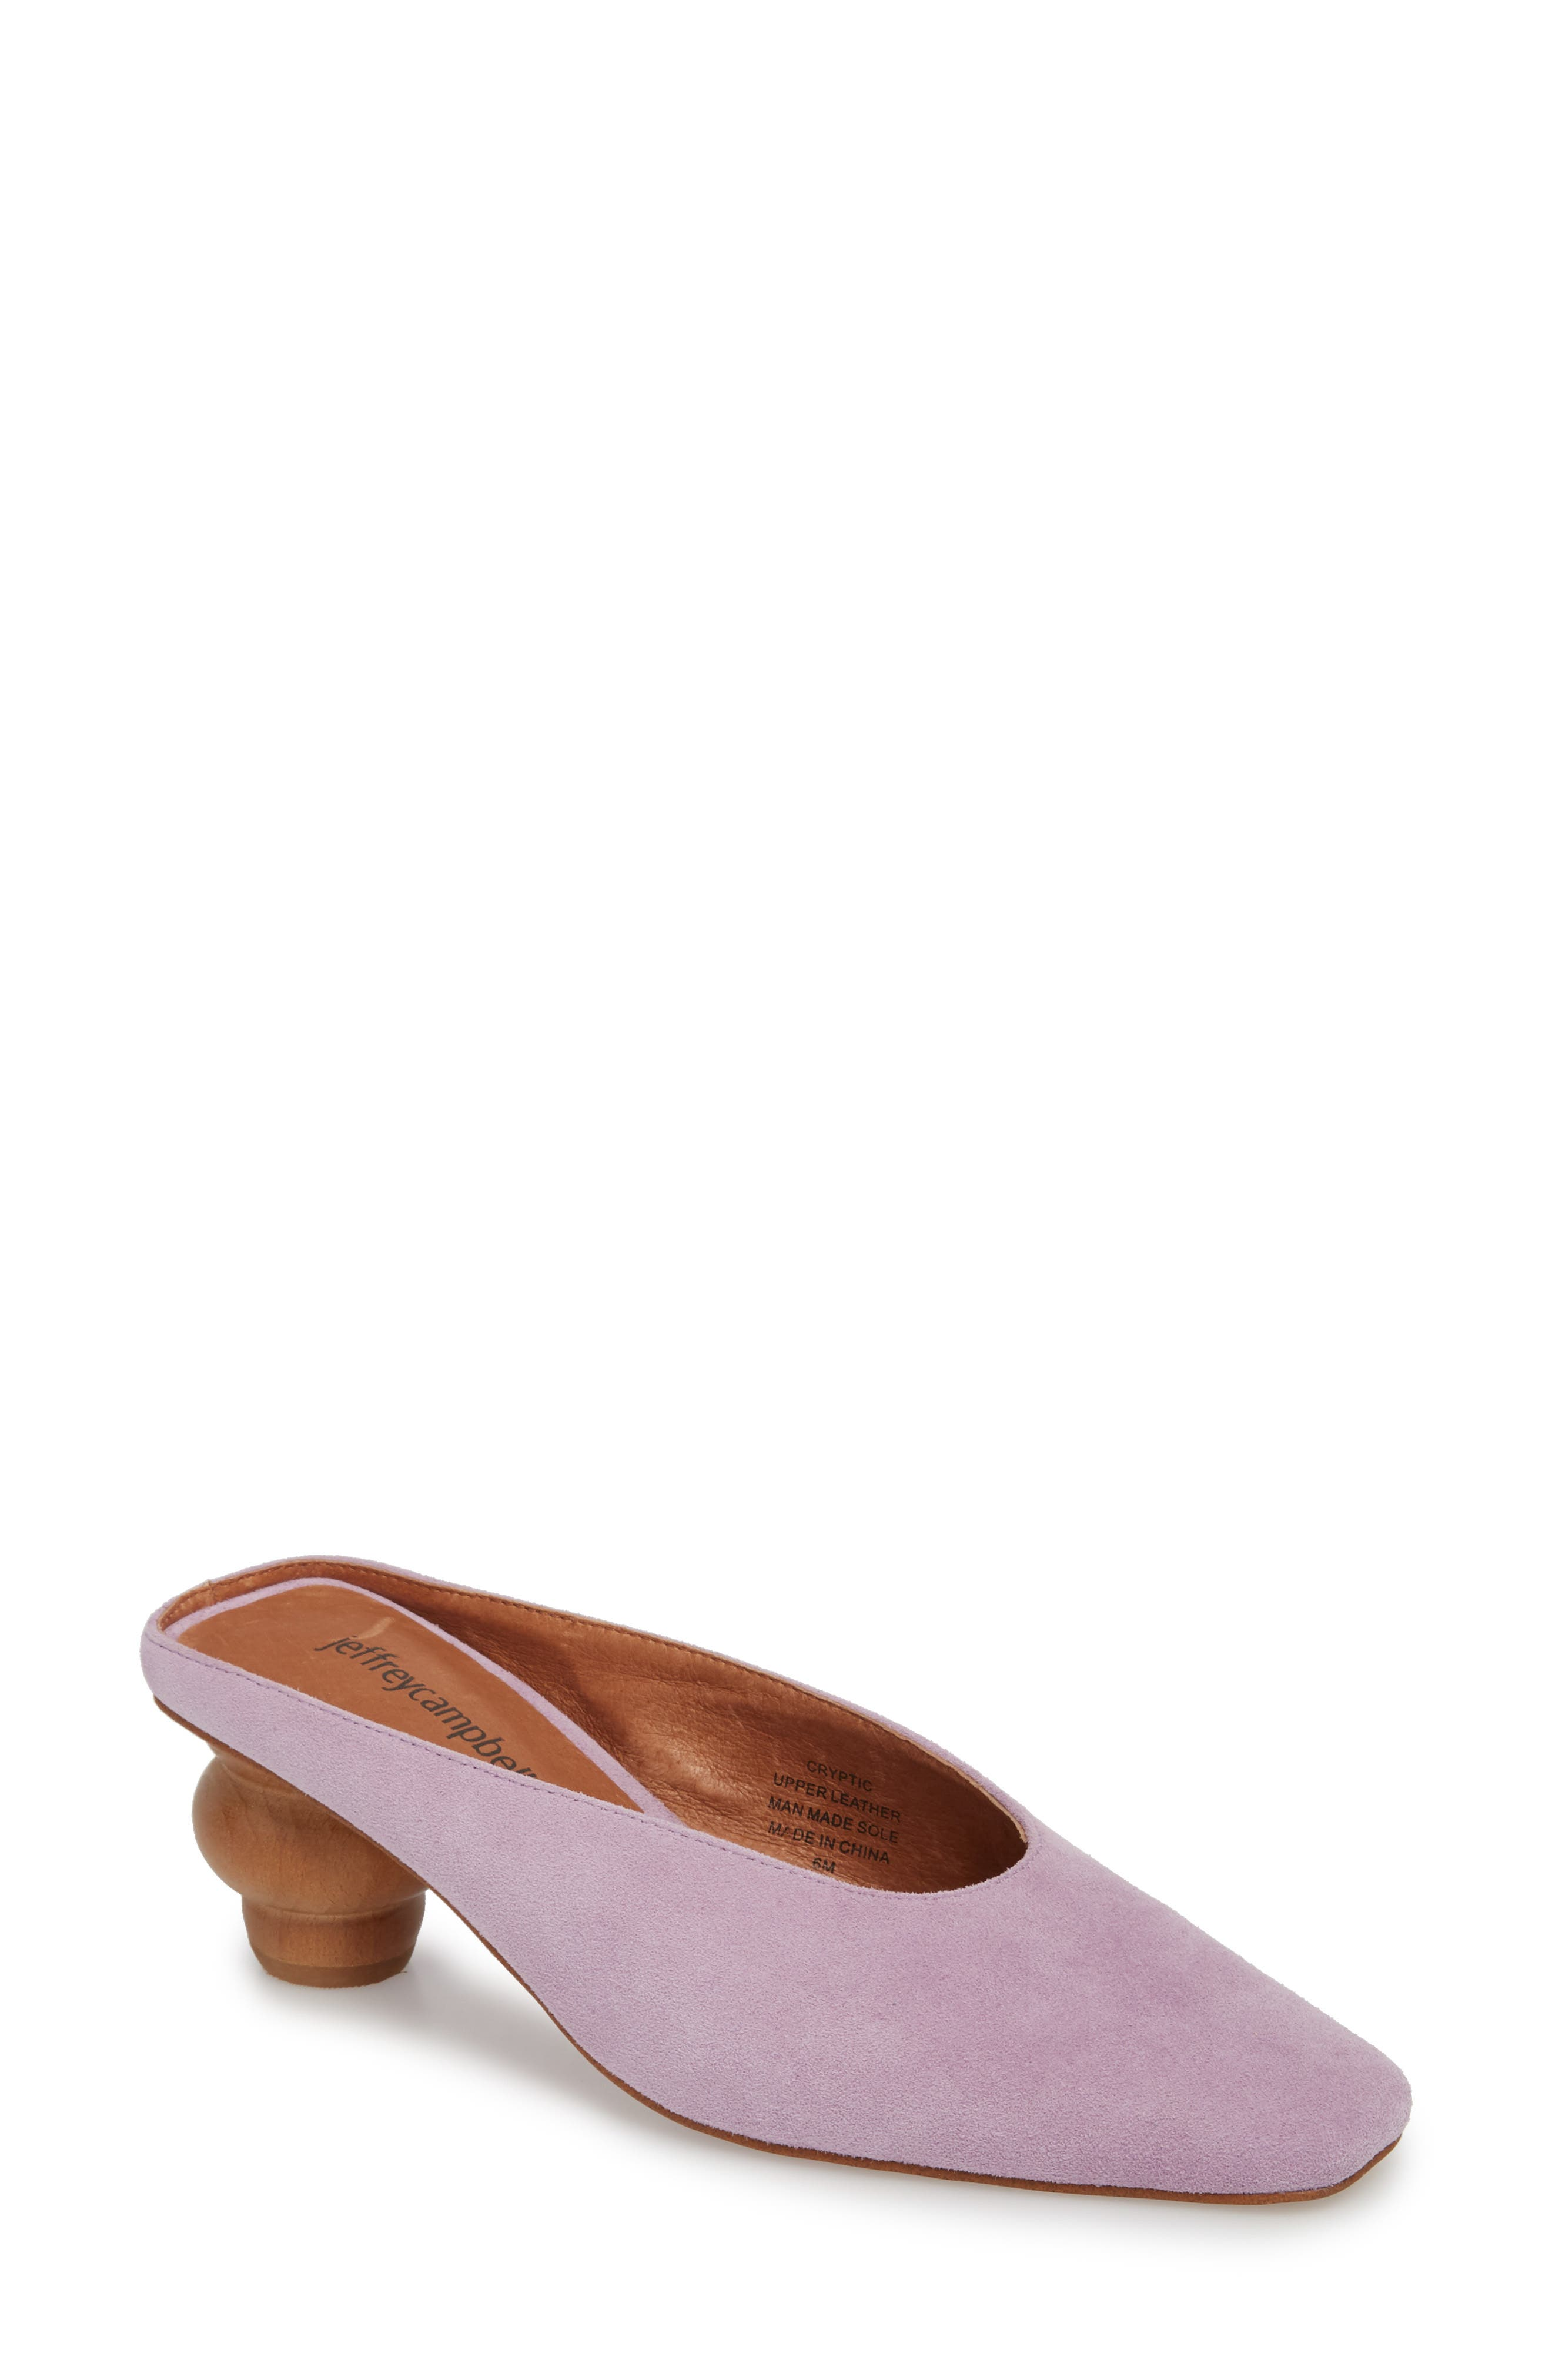 Cryptic Statement Heel Mule,                             Main thumbnail 1, color,                             Lilac Suede